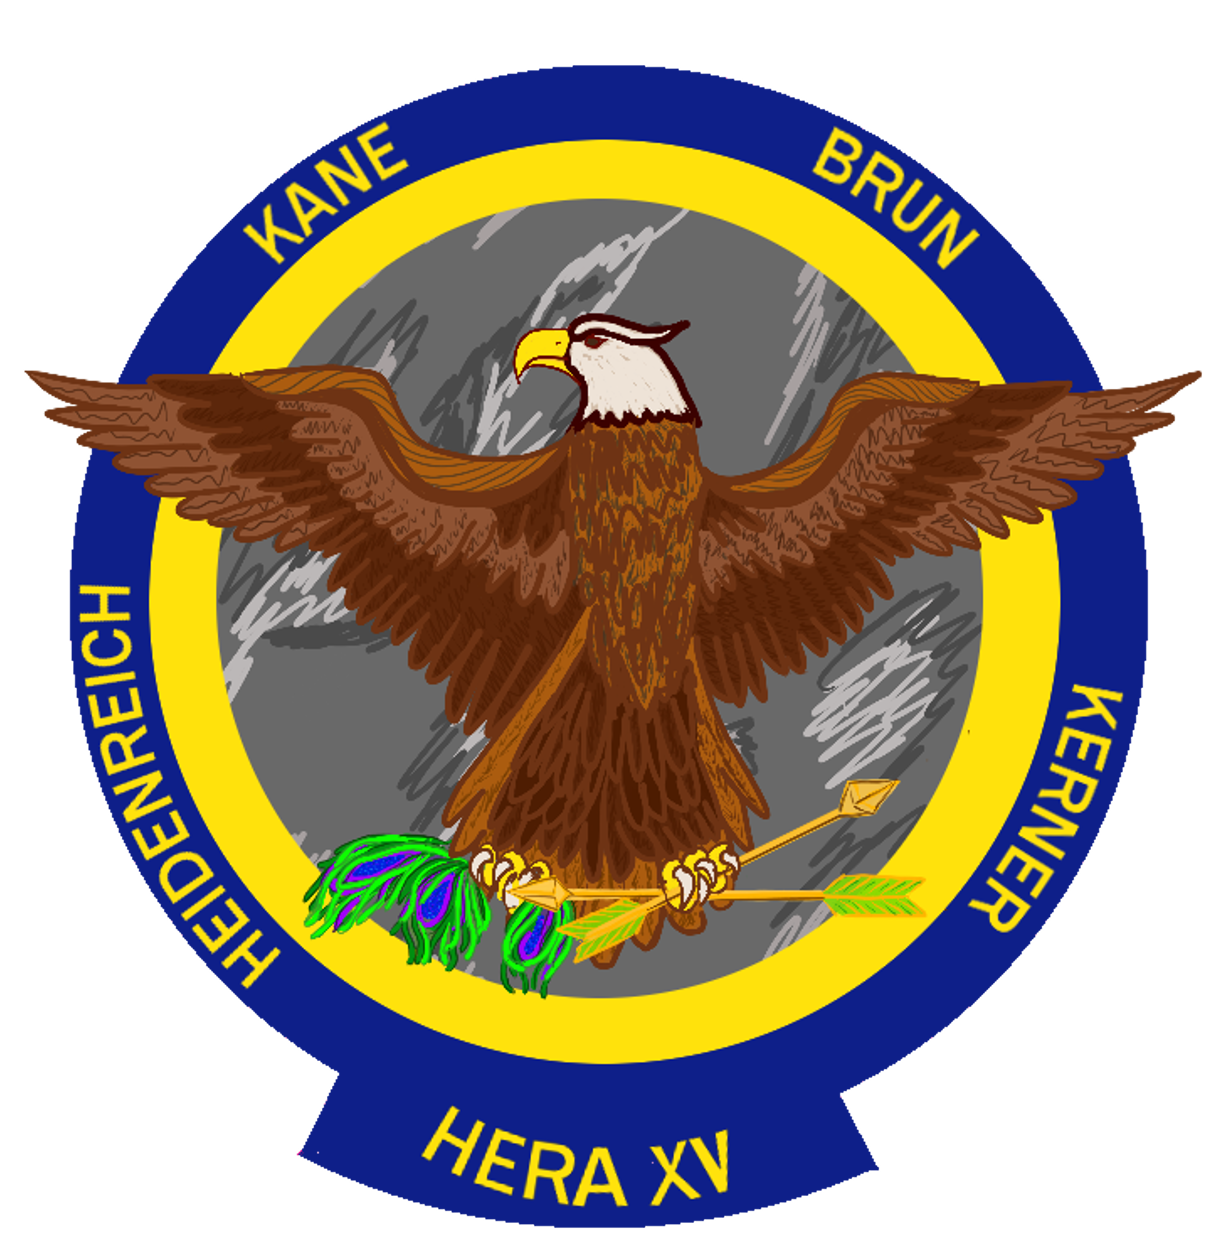 HERA XV Mission  - Mission Dates: October 27 to December 11 of 2017Crew: 4 manned mission: One commander, one flight engineer and two mission specialistsLocation: HERA Habitat at Johnson Space Center HoustonMore Information: HERA Analog Missions